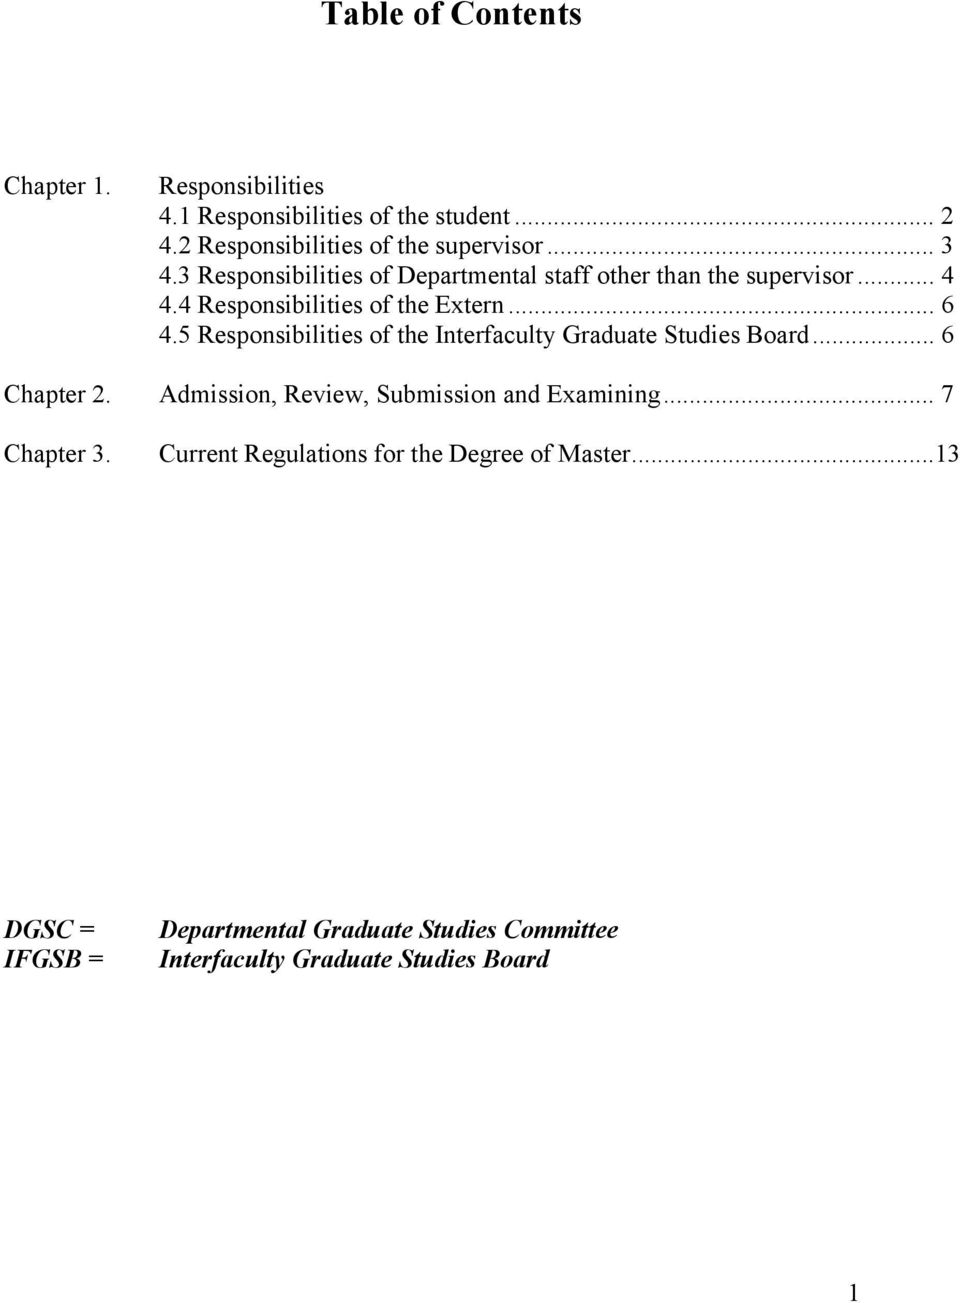 5 Responsibilities of the Interfaculty Graduate Studies Board... 6 Chapter 2. Admission, Review, Submission and Examining.